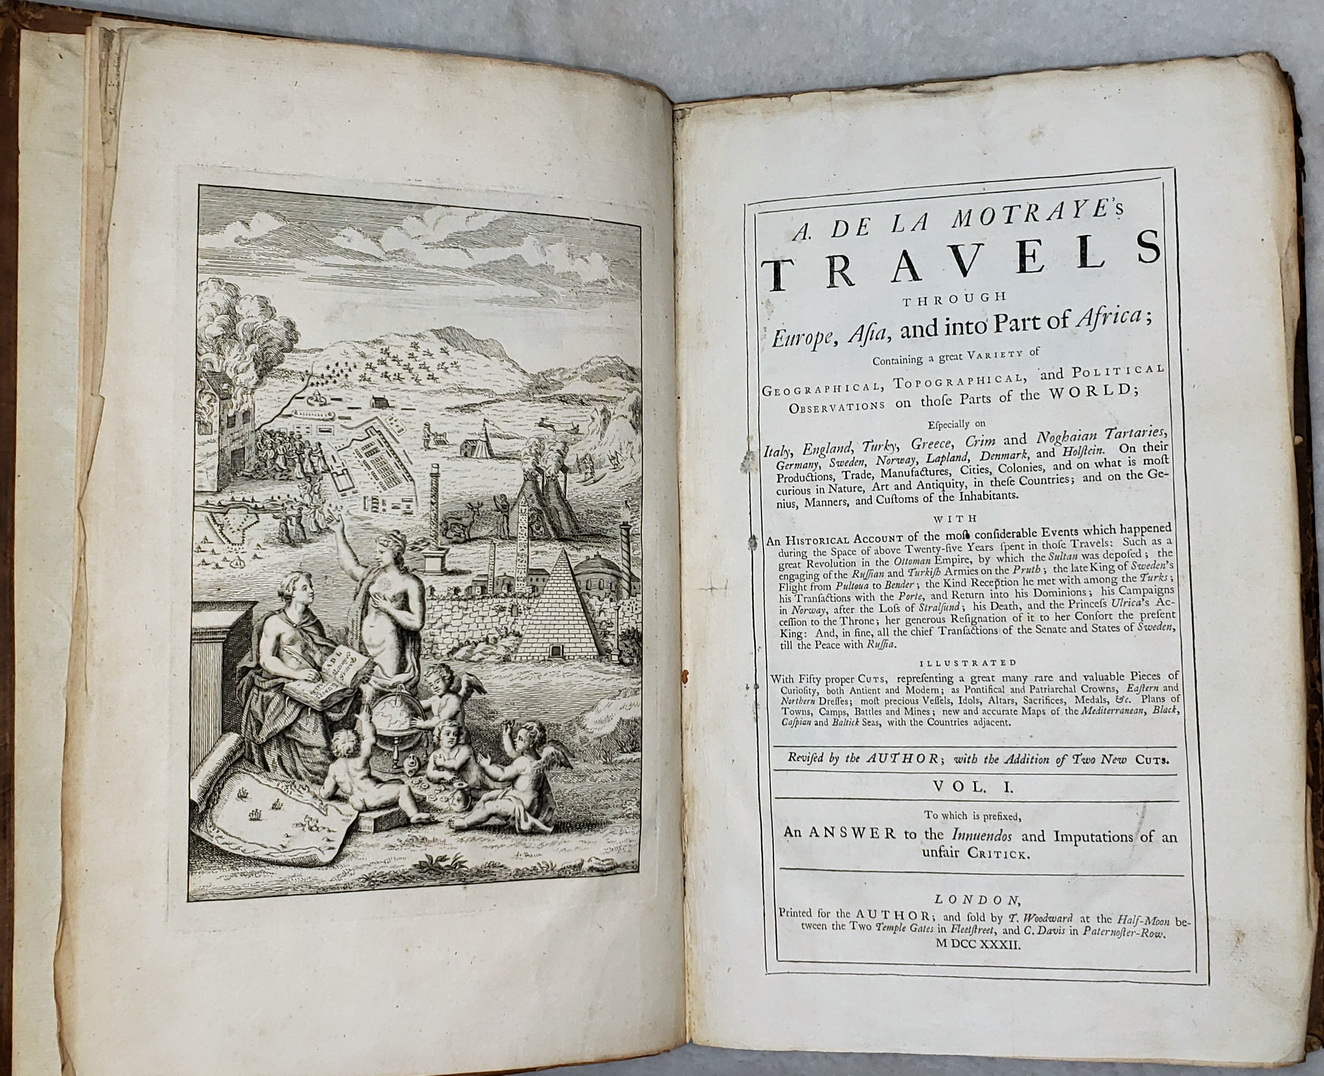 Image for A. De La Motraye's Travels Through Europe, Asia, and Into Part of Africa; Containing a Great Variety of Geographical, Topographical, and Political Observations On These Parts of the World (Three Volumes)